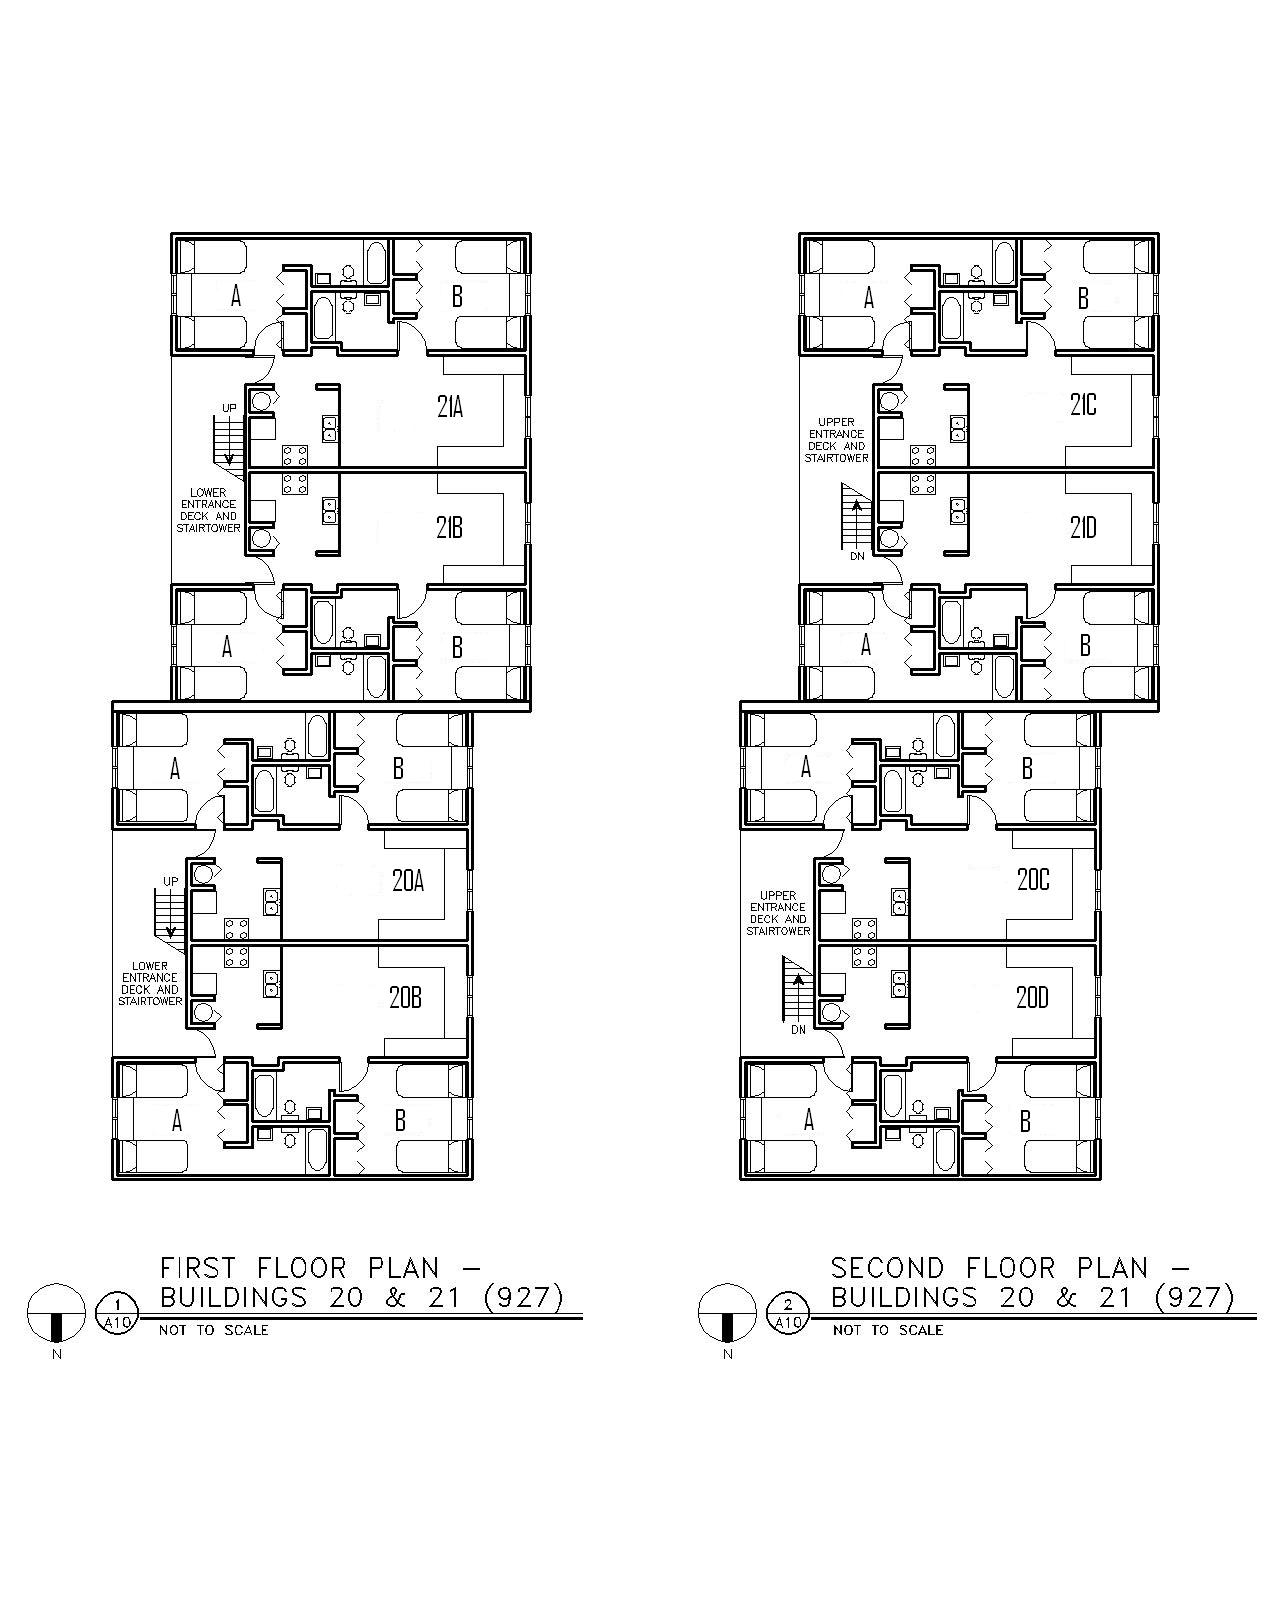 Floor Plan for Buildings 20 & 21